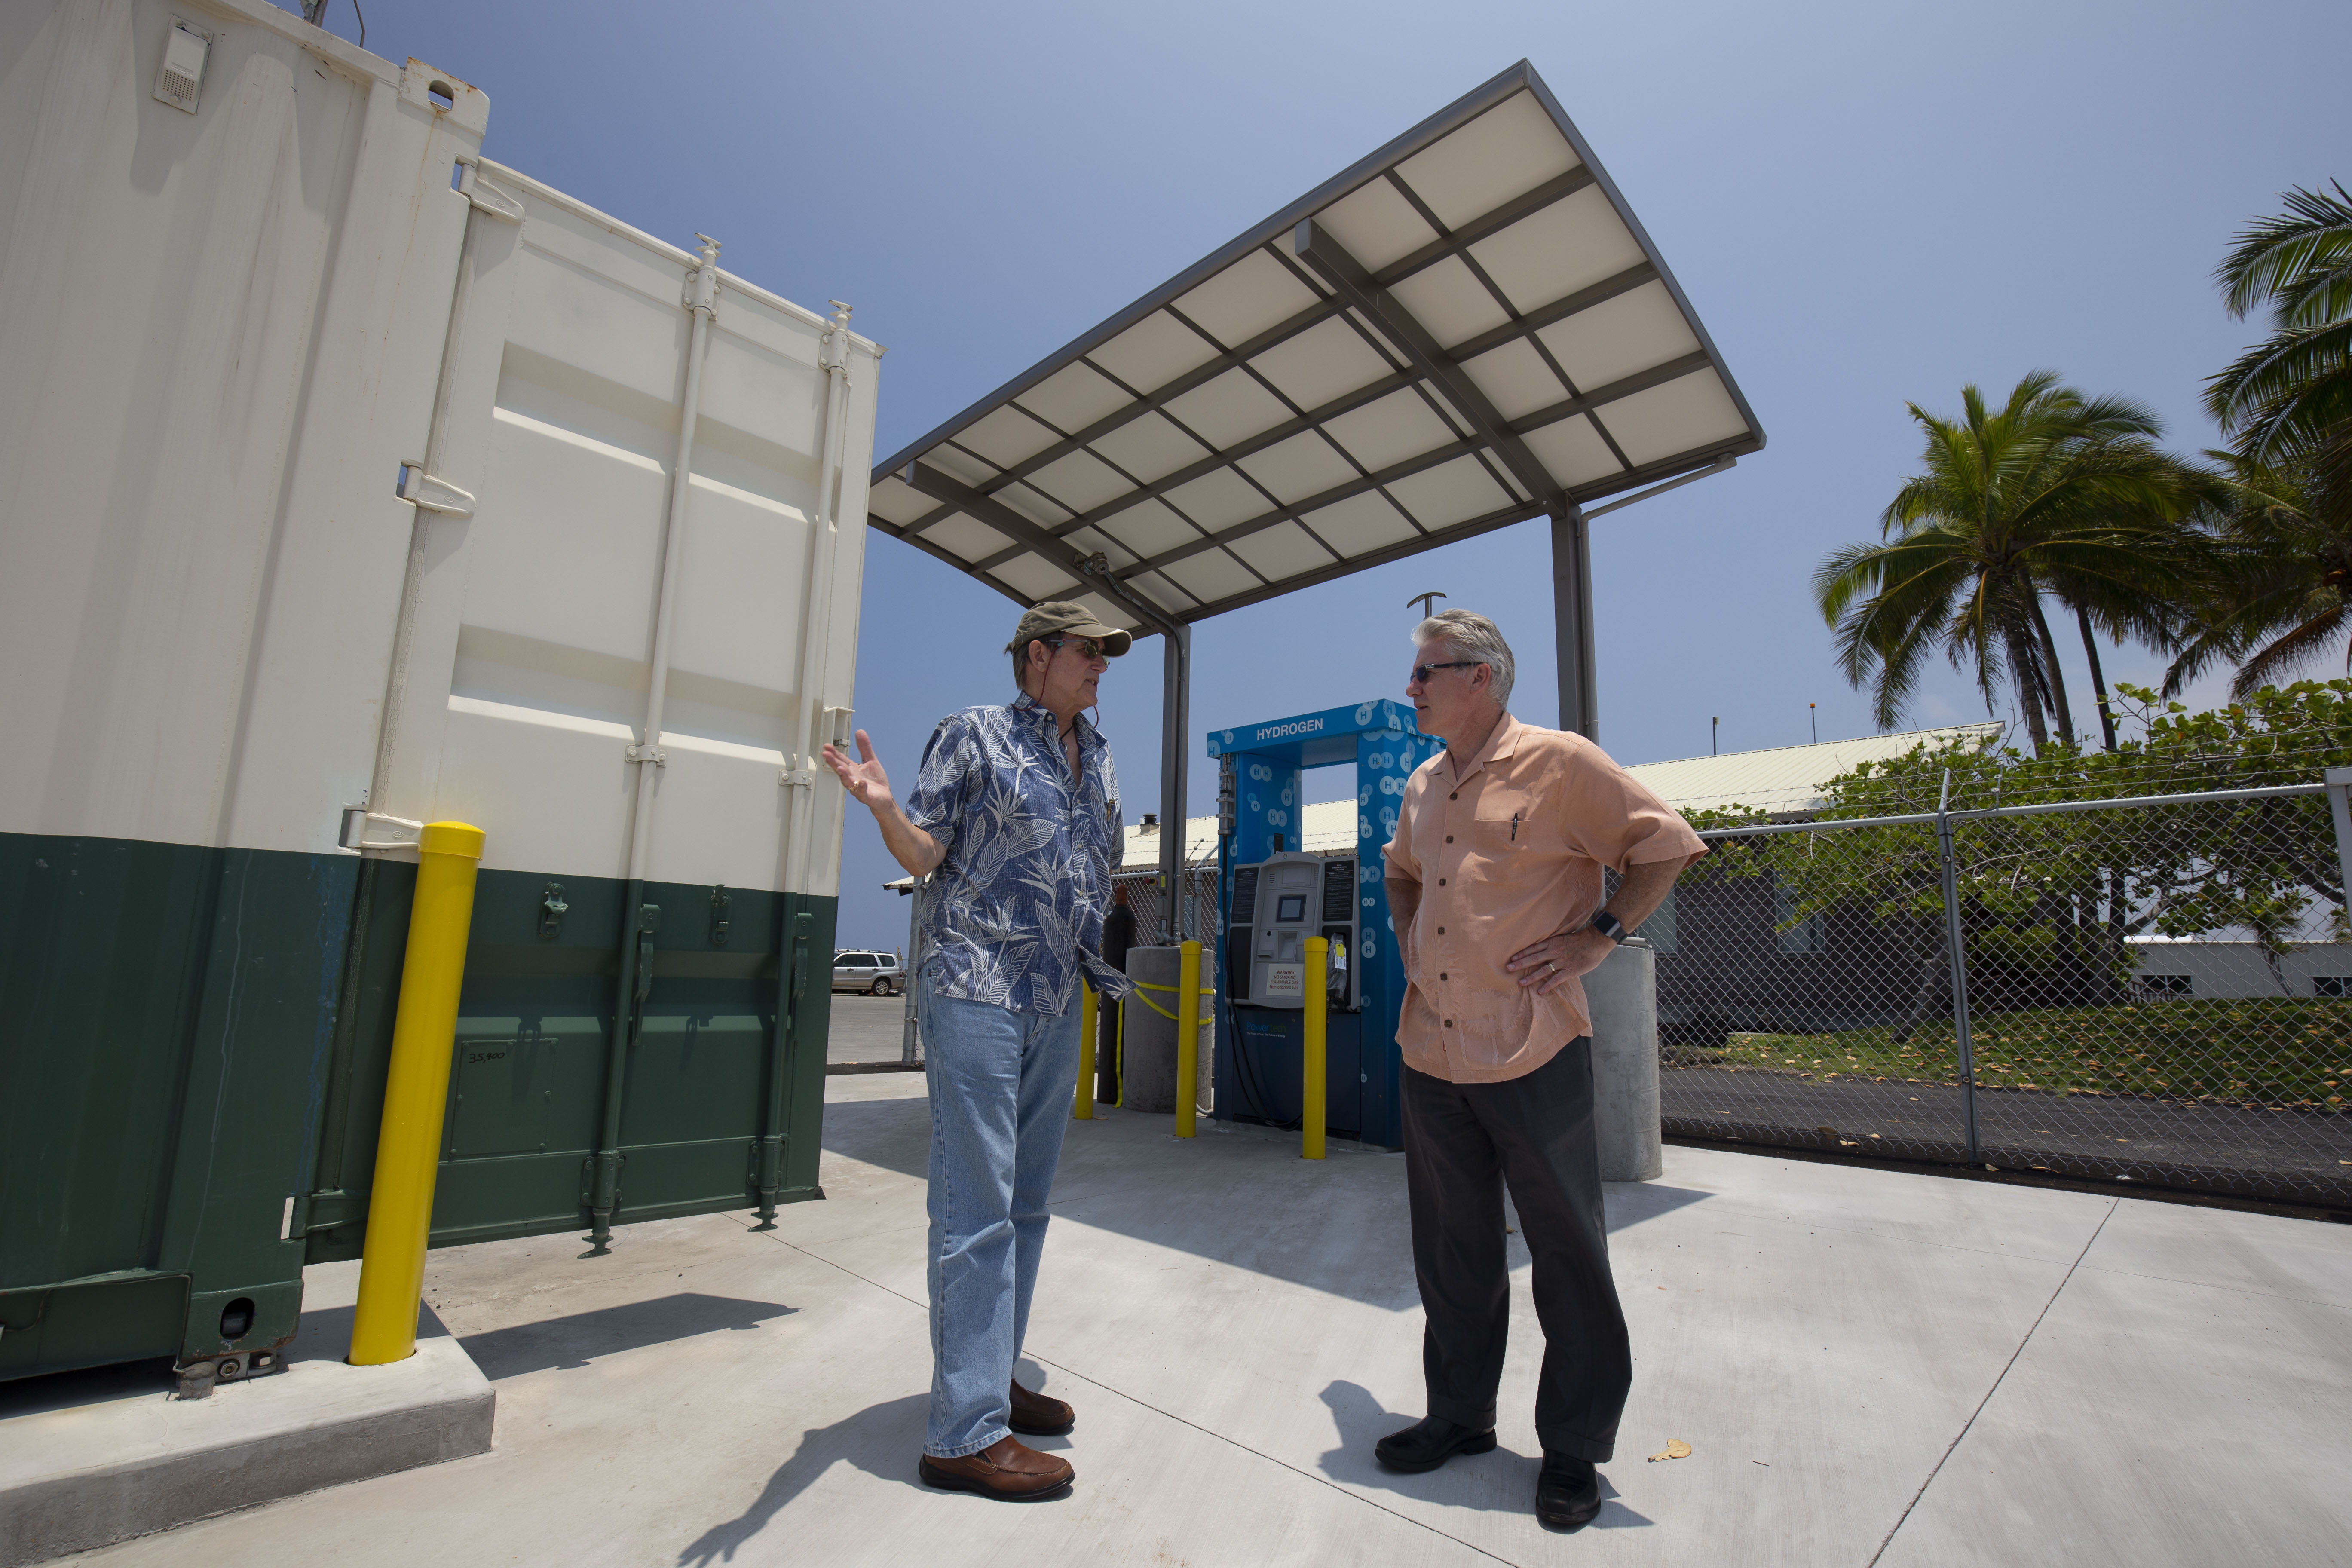 CTE staff on site at a hydrogen fueling station in Hawaii